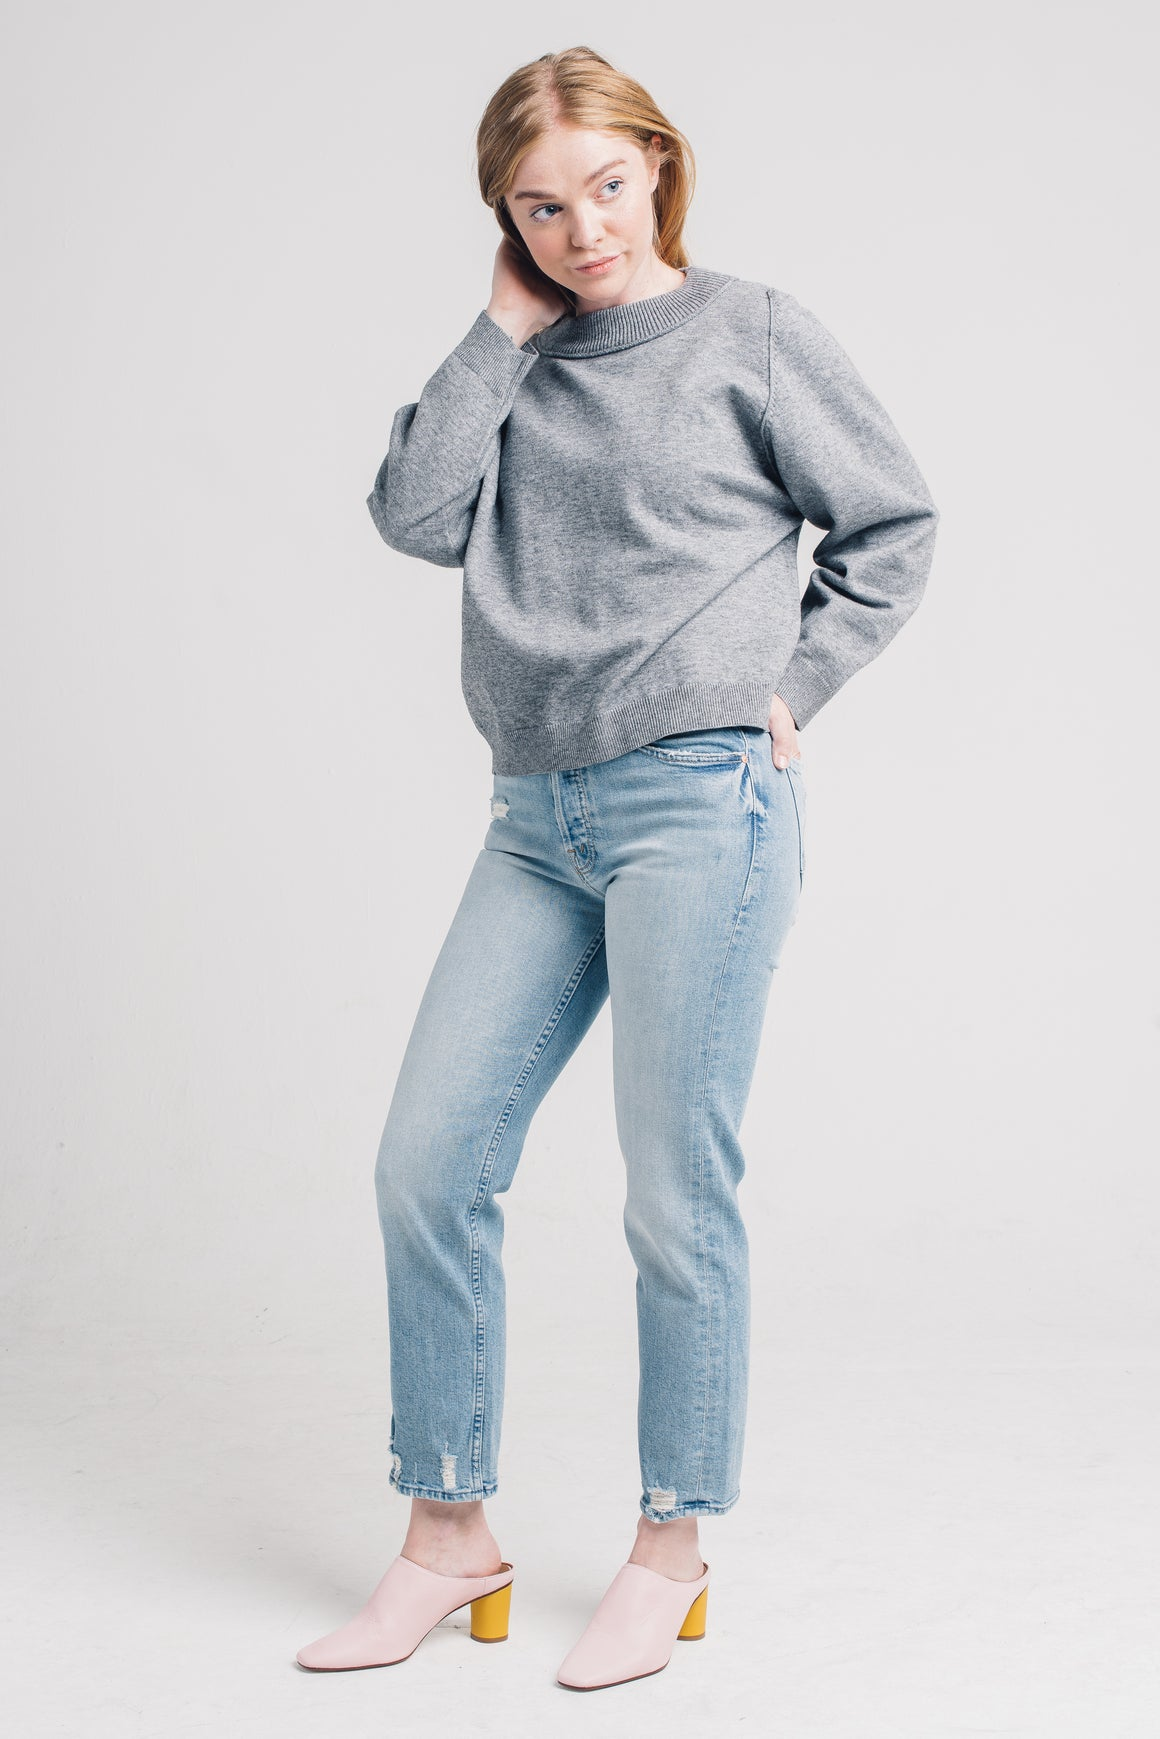 daily sweater heather grey knot sisters | pipe and row boutique seattle